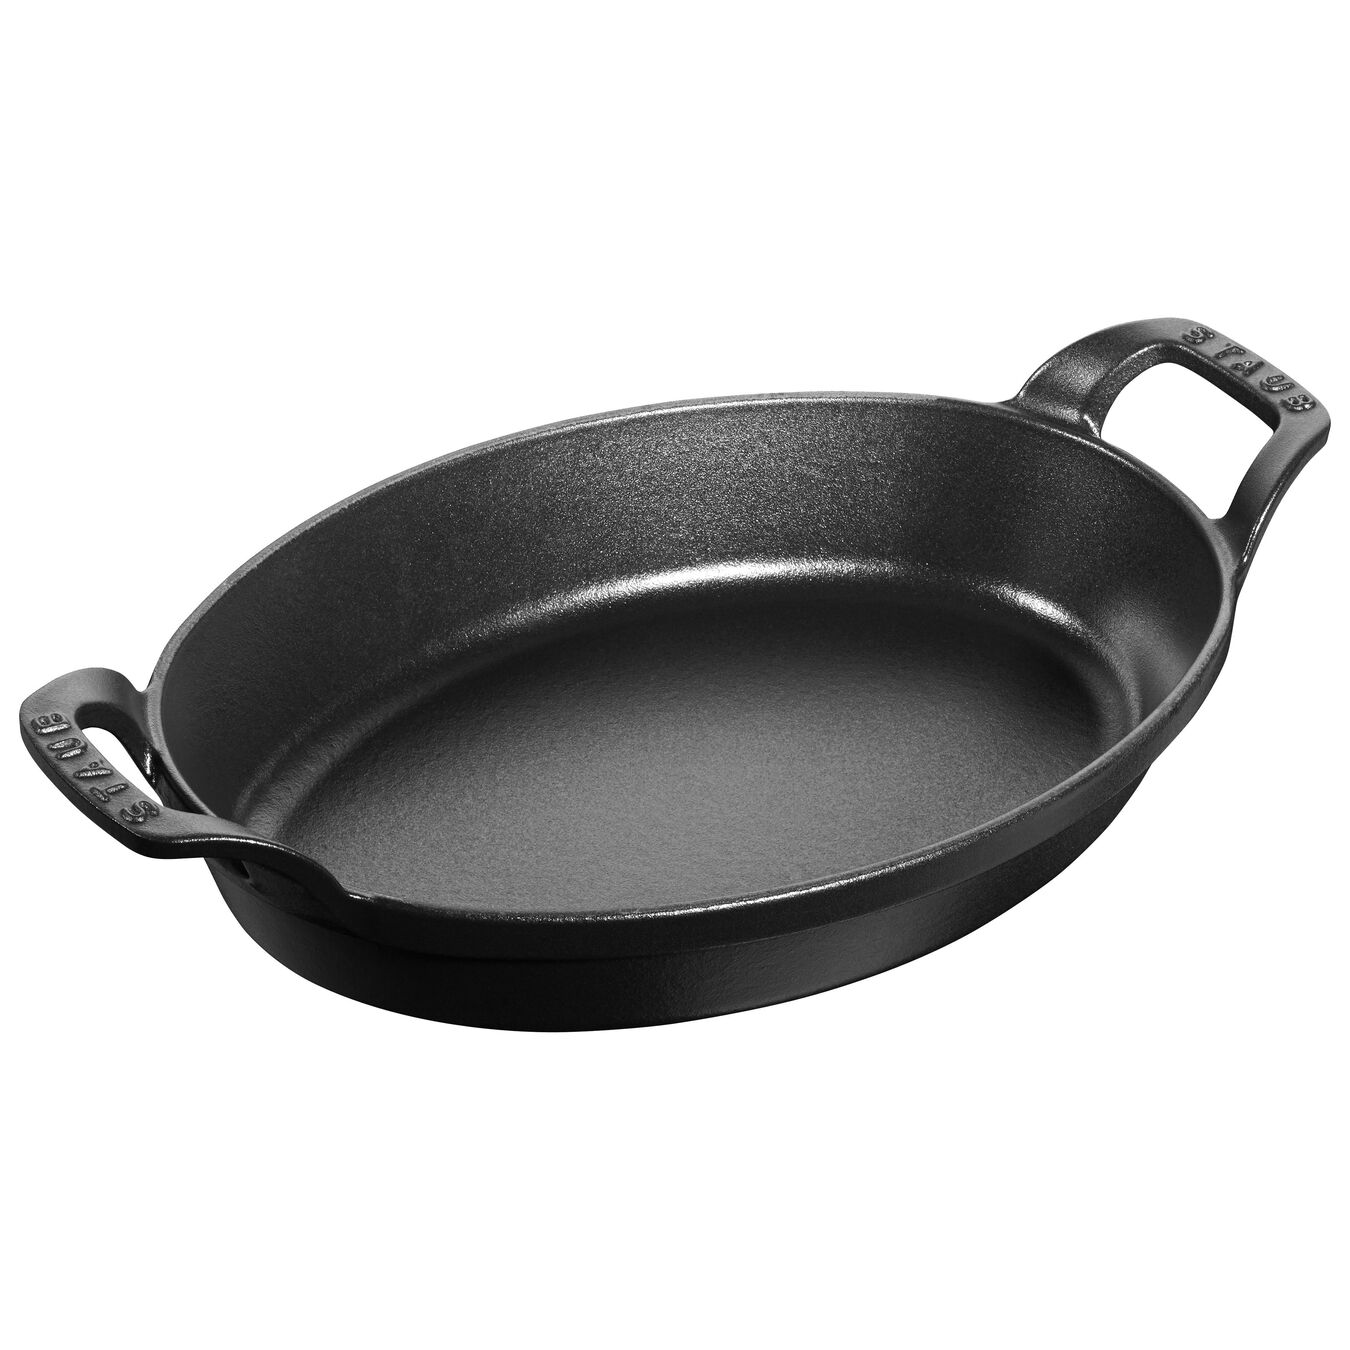 9.5-inch x 6.75-inch Oval Baking Dish - Matte Black,,large 1